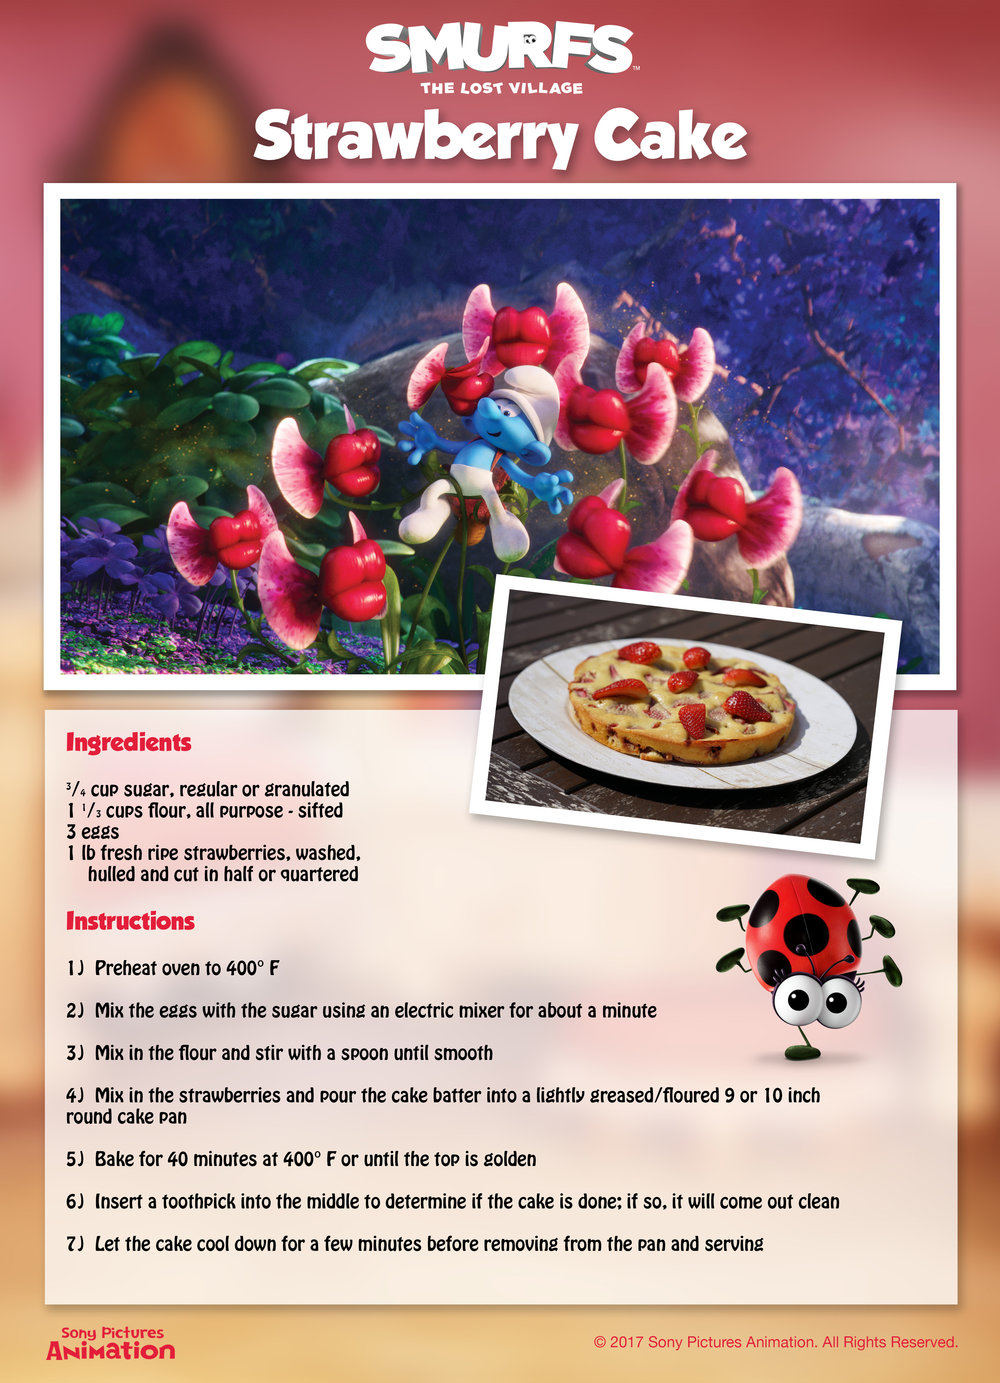 Smurfs The Lost Village Recipes for Kids. Strawberry Cake Recipe. Fun Smurfs Activities.